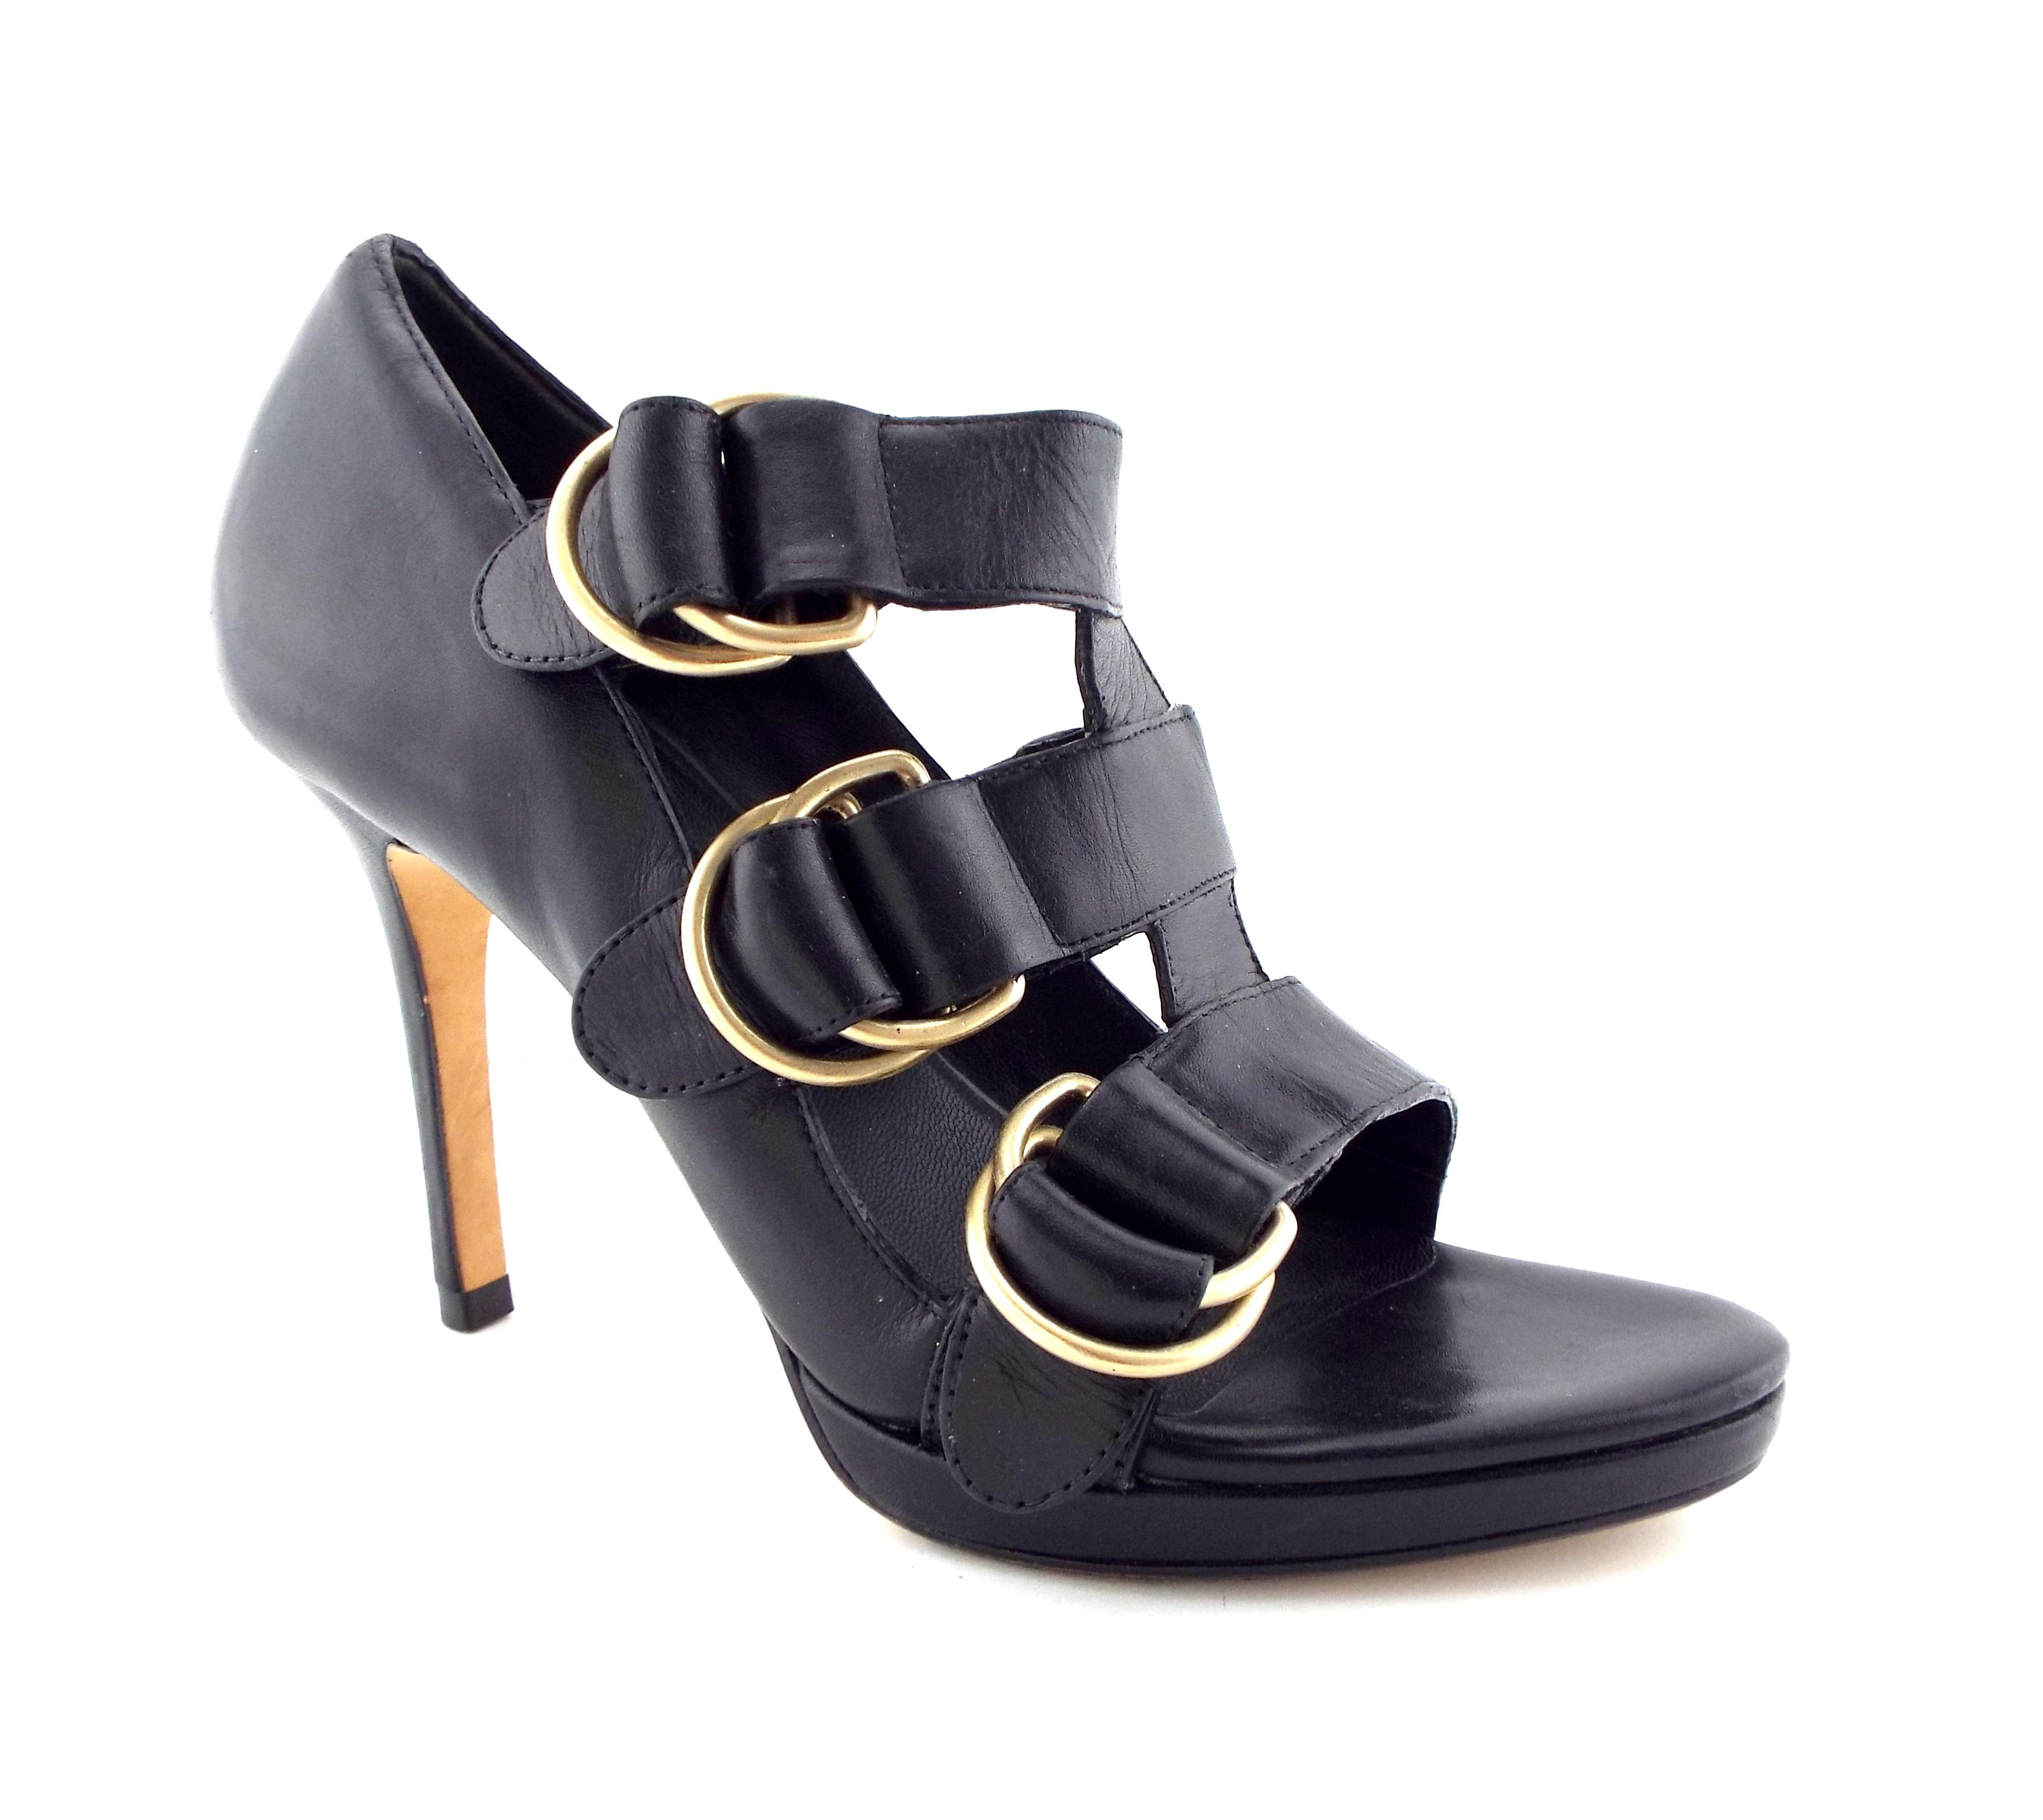 3a91ace29acb2 ... inexpensive cole haan nike air strap buckle veronica black sandals  884f4 2b1dc